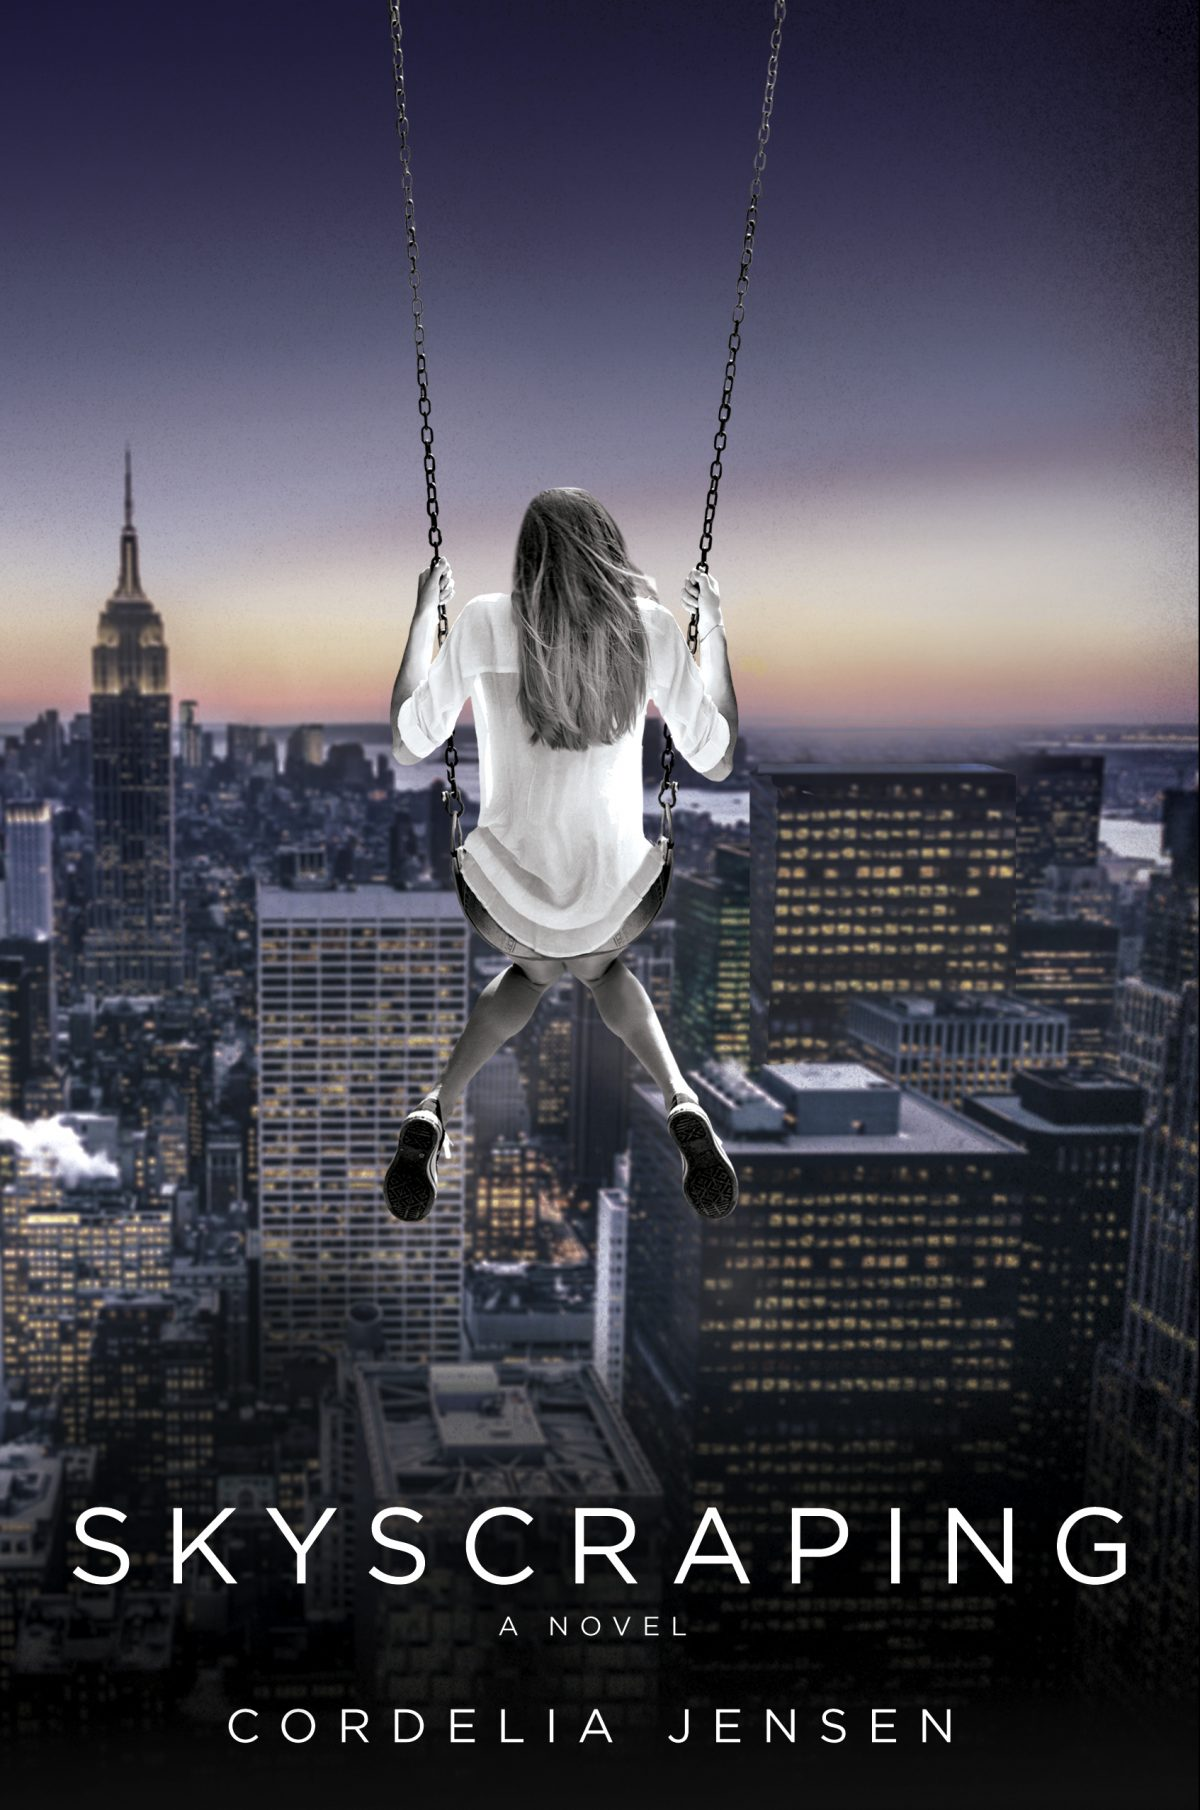 A girl with long blonde hair wearing a white shirt sits in a swing, facing away, high in the sky overlooking the New York City skyline.